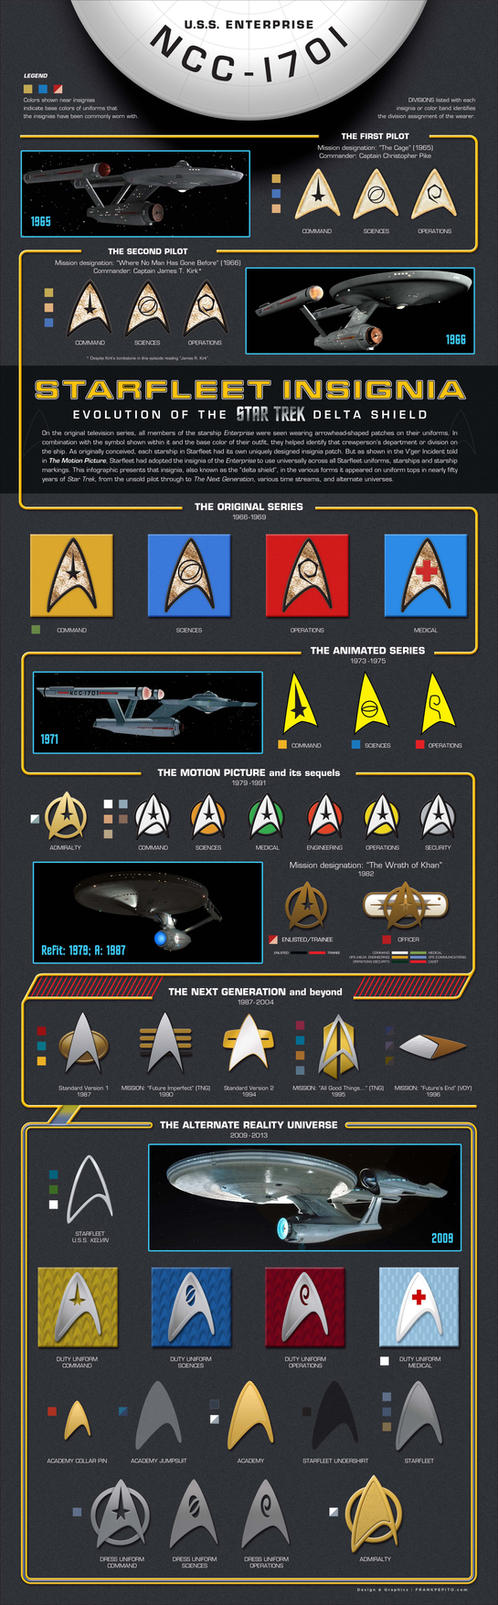 Starfleet Insignia: The Star Trek Delta Shield by YodaMaker